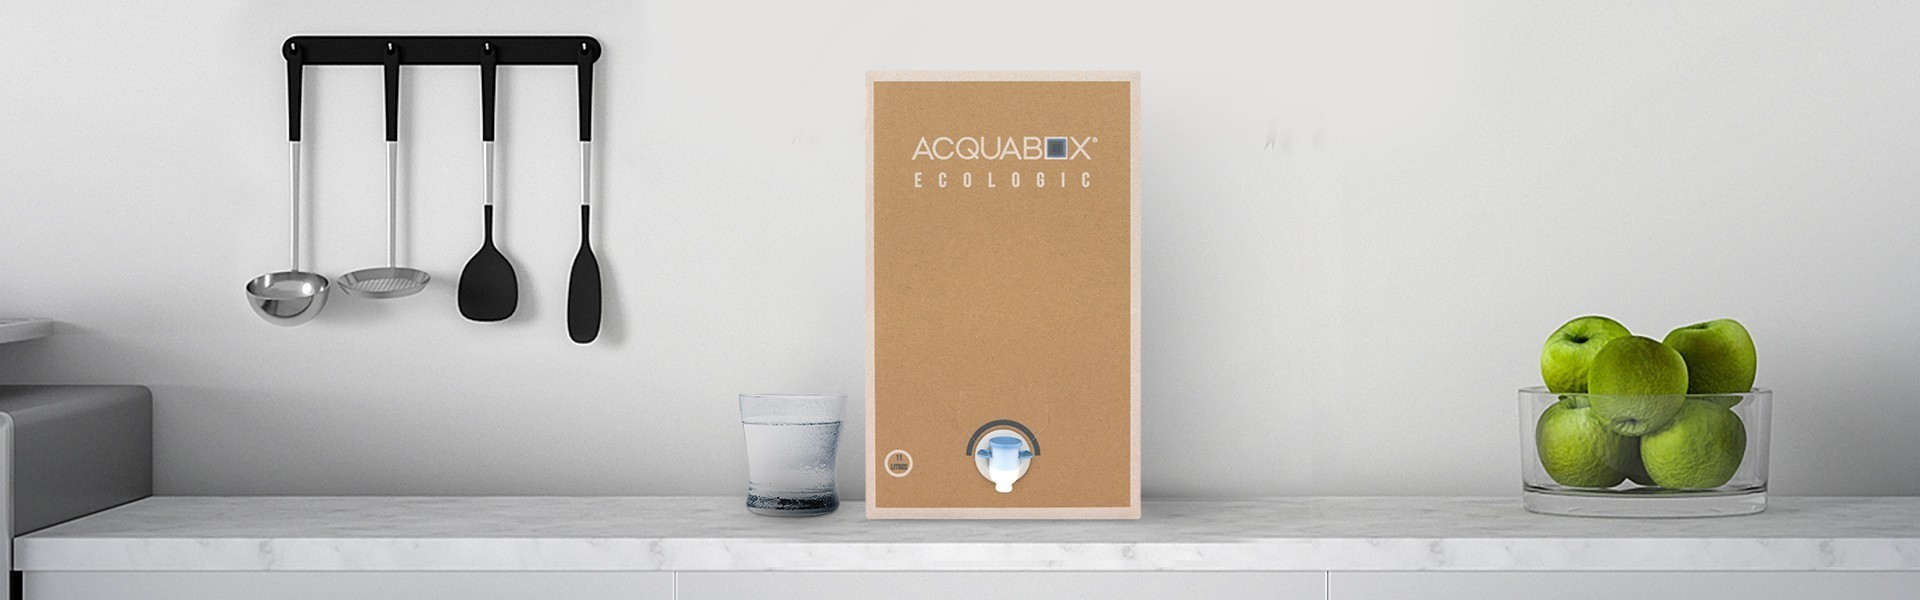 Acquabox